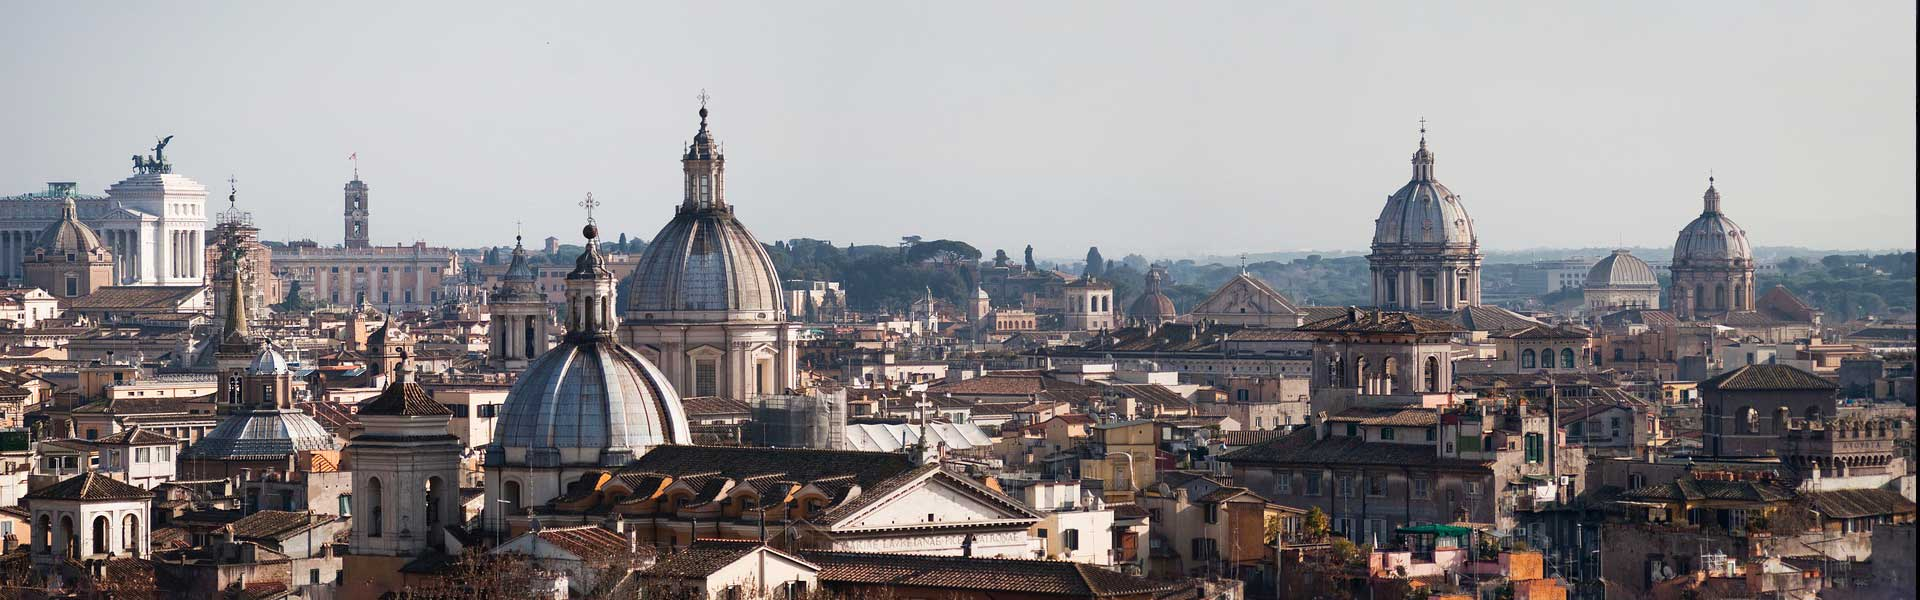 Rome 3 day itinerary - what to see and do